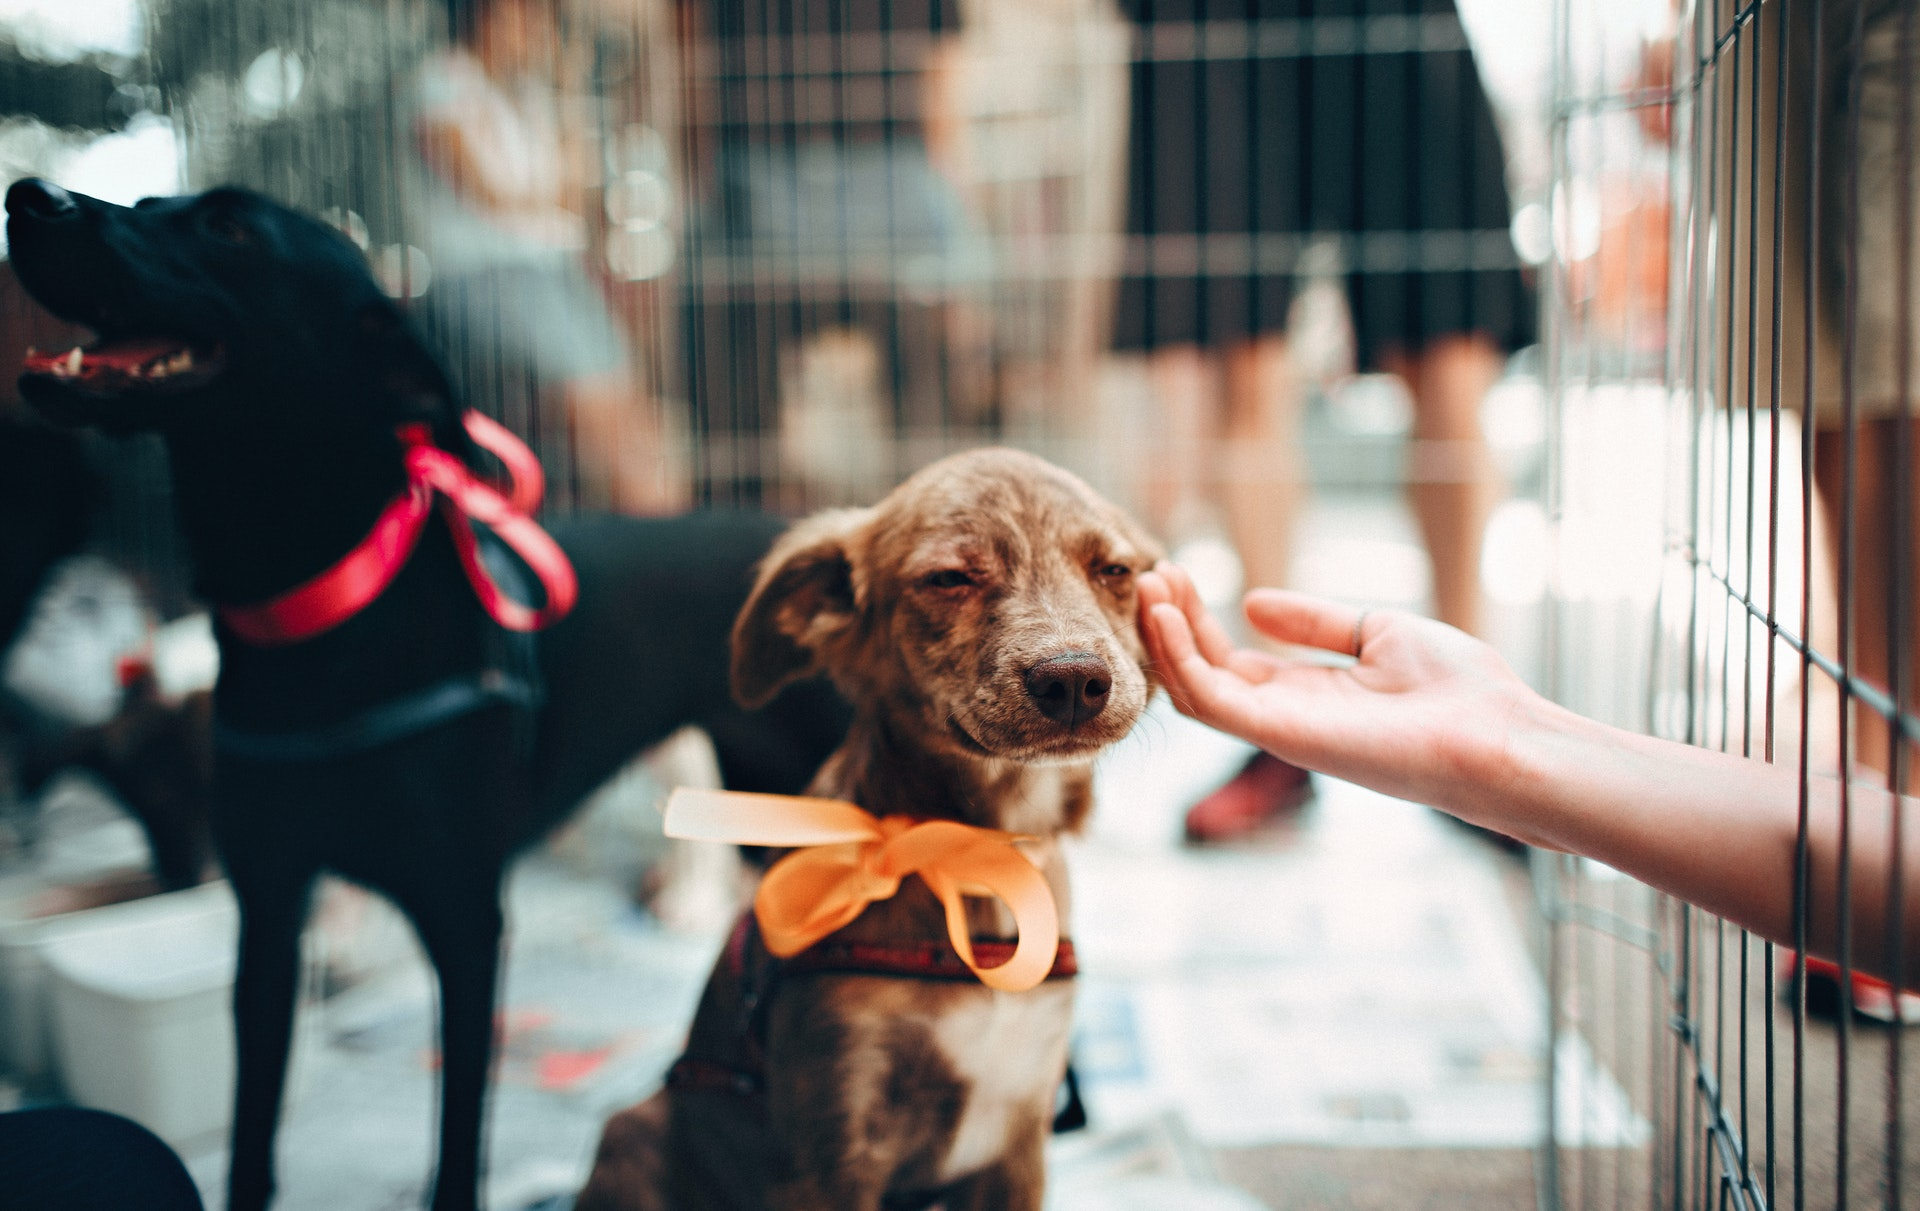 Best practices to help save shelter animals on social media